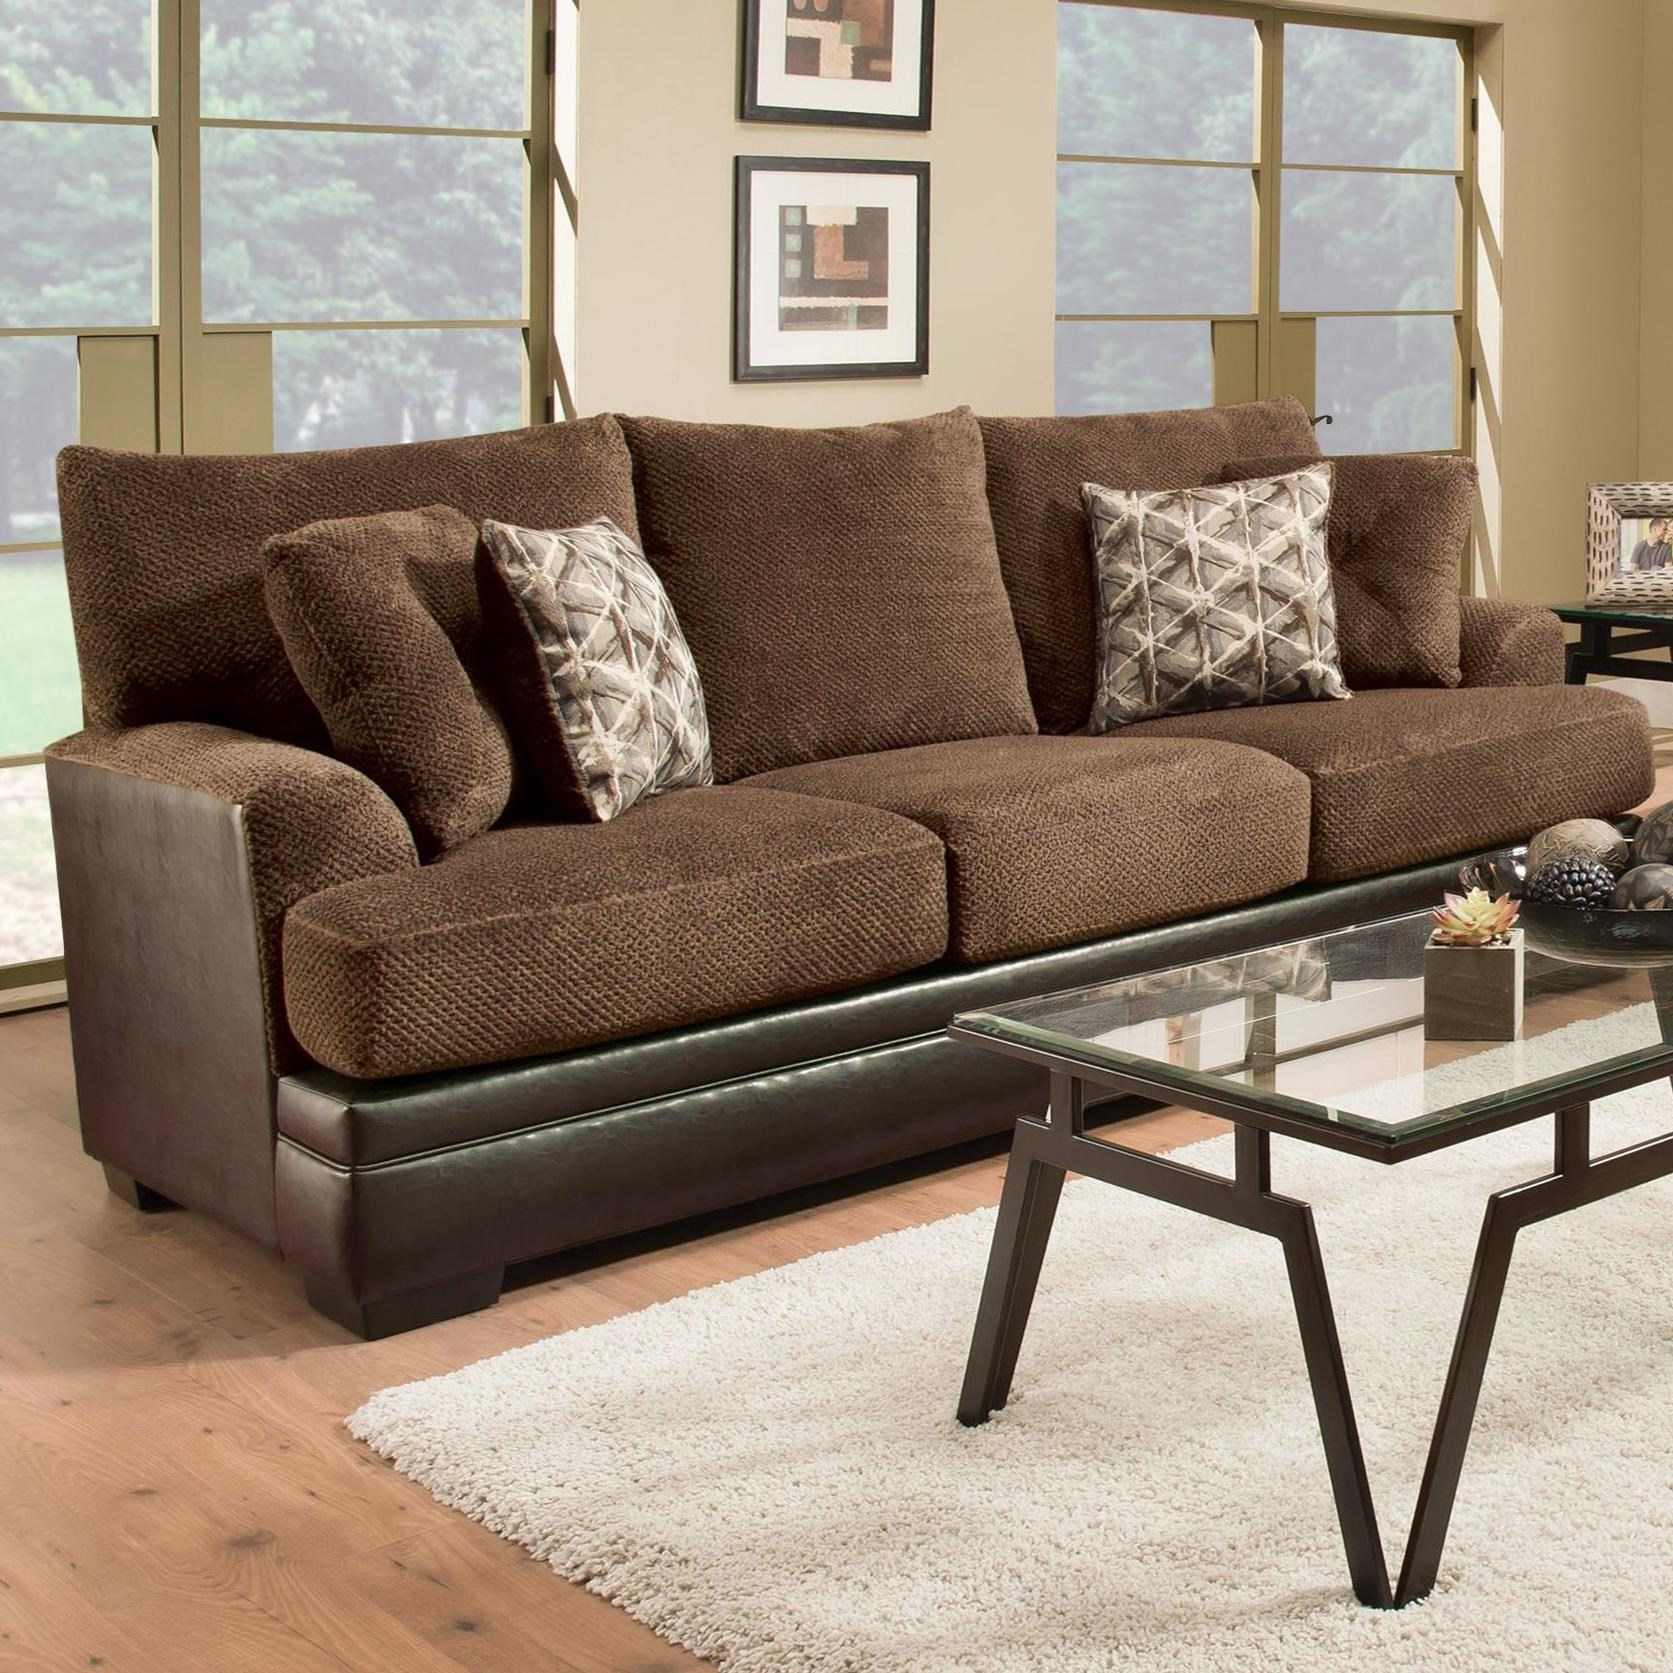 Albany 8640 Sofa - Item Number: 8640-00-GENS-34118